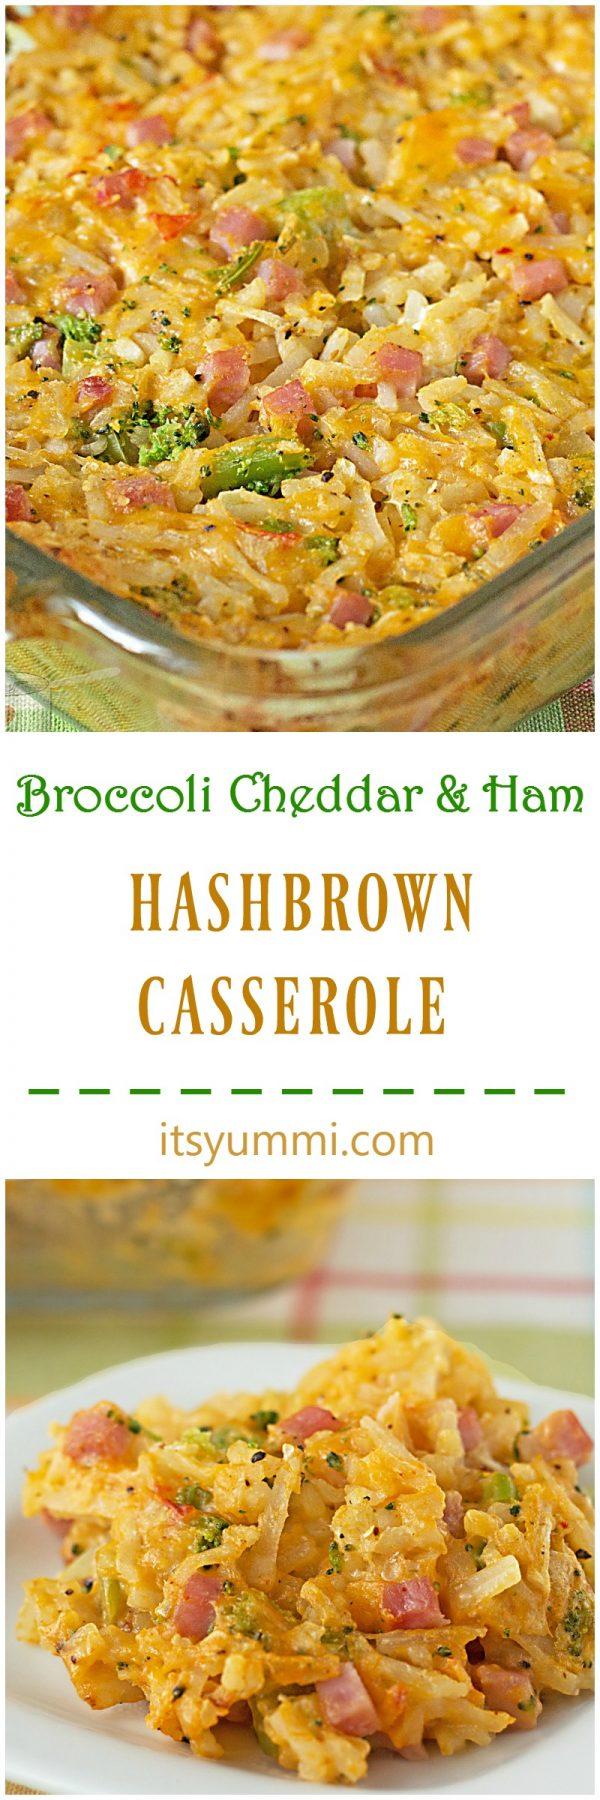 hashbrown casserole with ham, broccoli and cheddar cheese